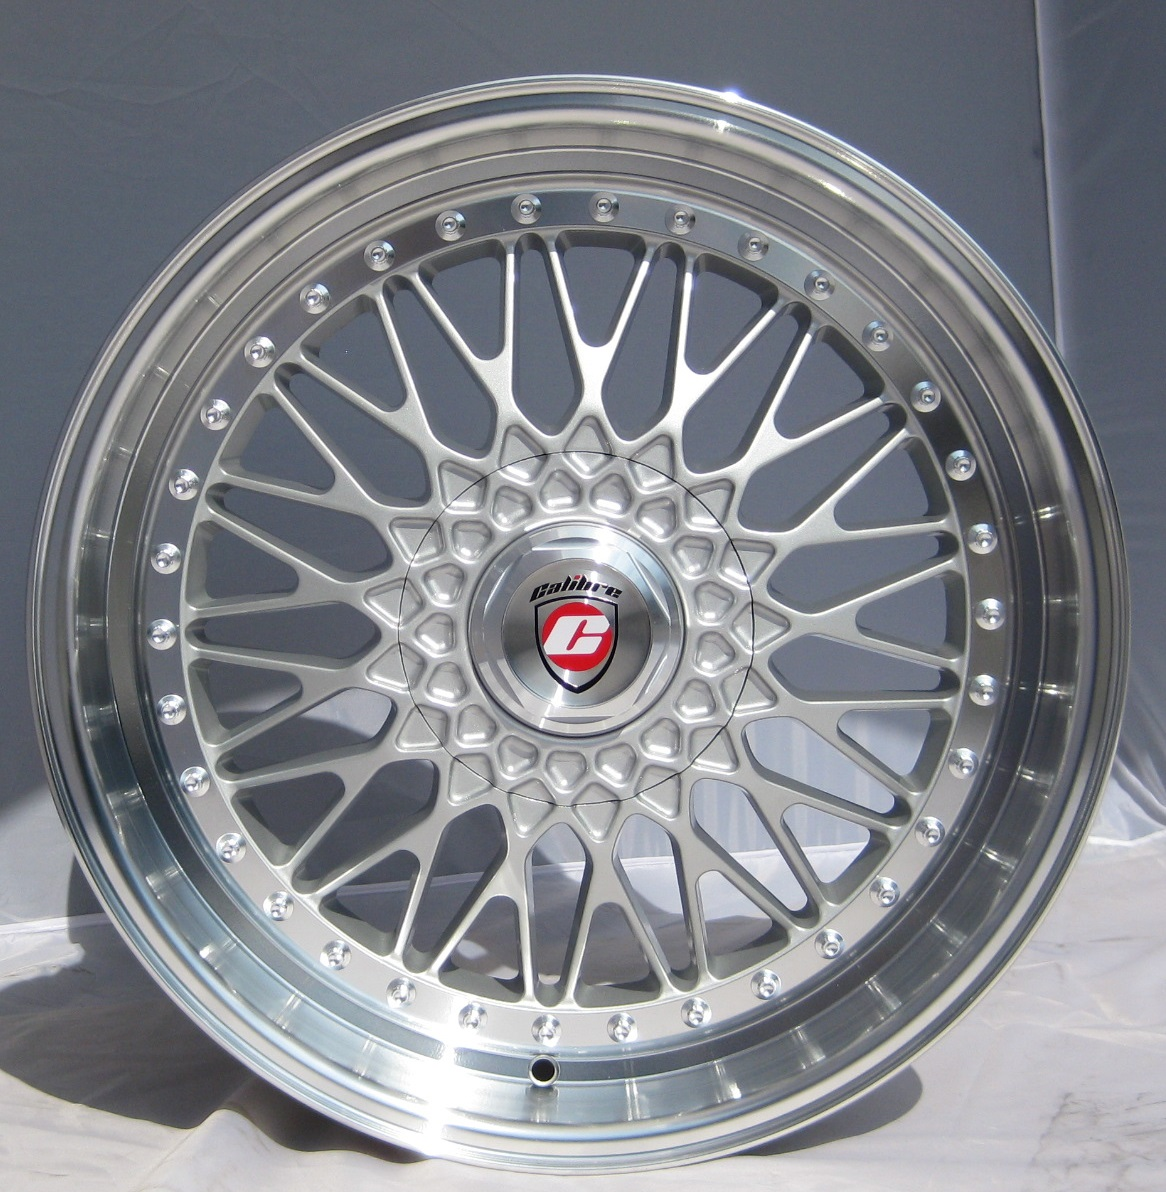 "NEW 19"" CALIBRE VINTAGE DEEP DISH X SPOKE ALLOY WHEELS WIDER 9.5"" REAR"